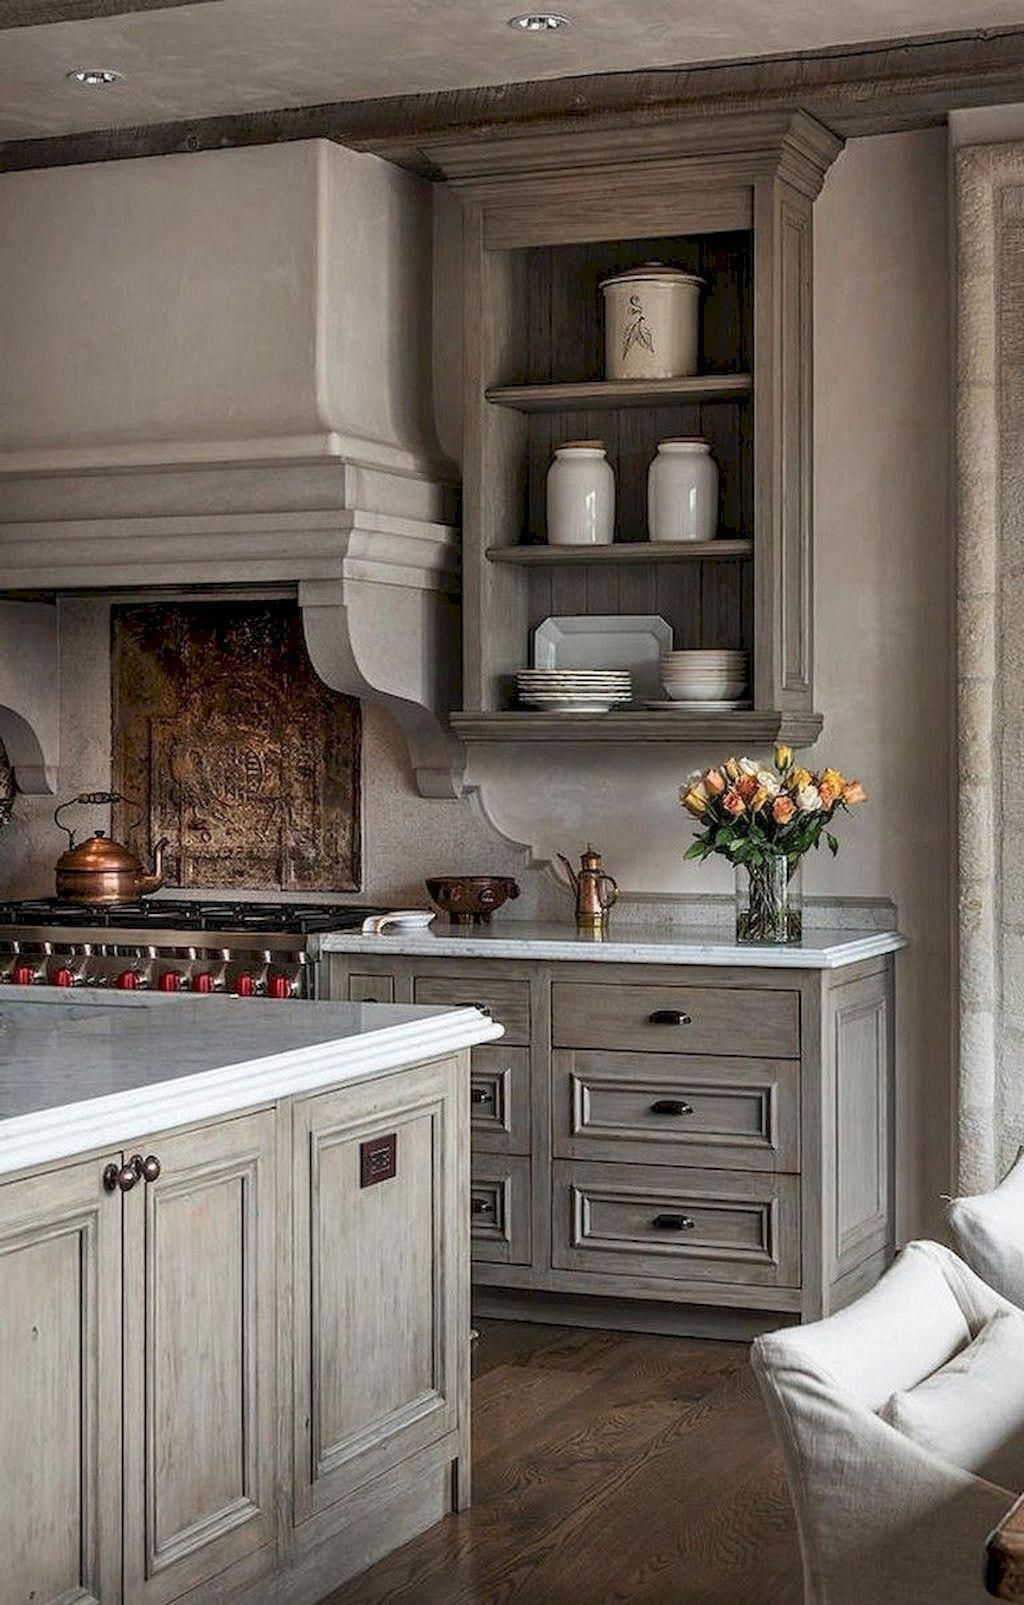 Timeless Rustic Farmhouse Kitchen Cabinets Ideas Remodel ... on Rustic:yucvisfte_S= Farmhouse Kitchen Ideas  id=61442